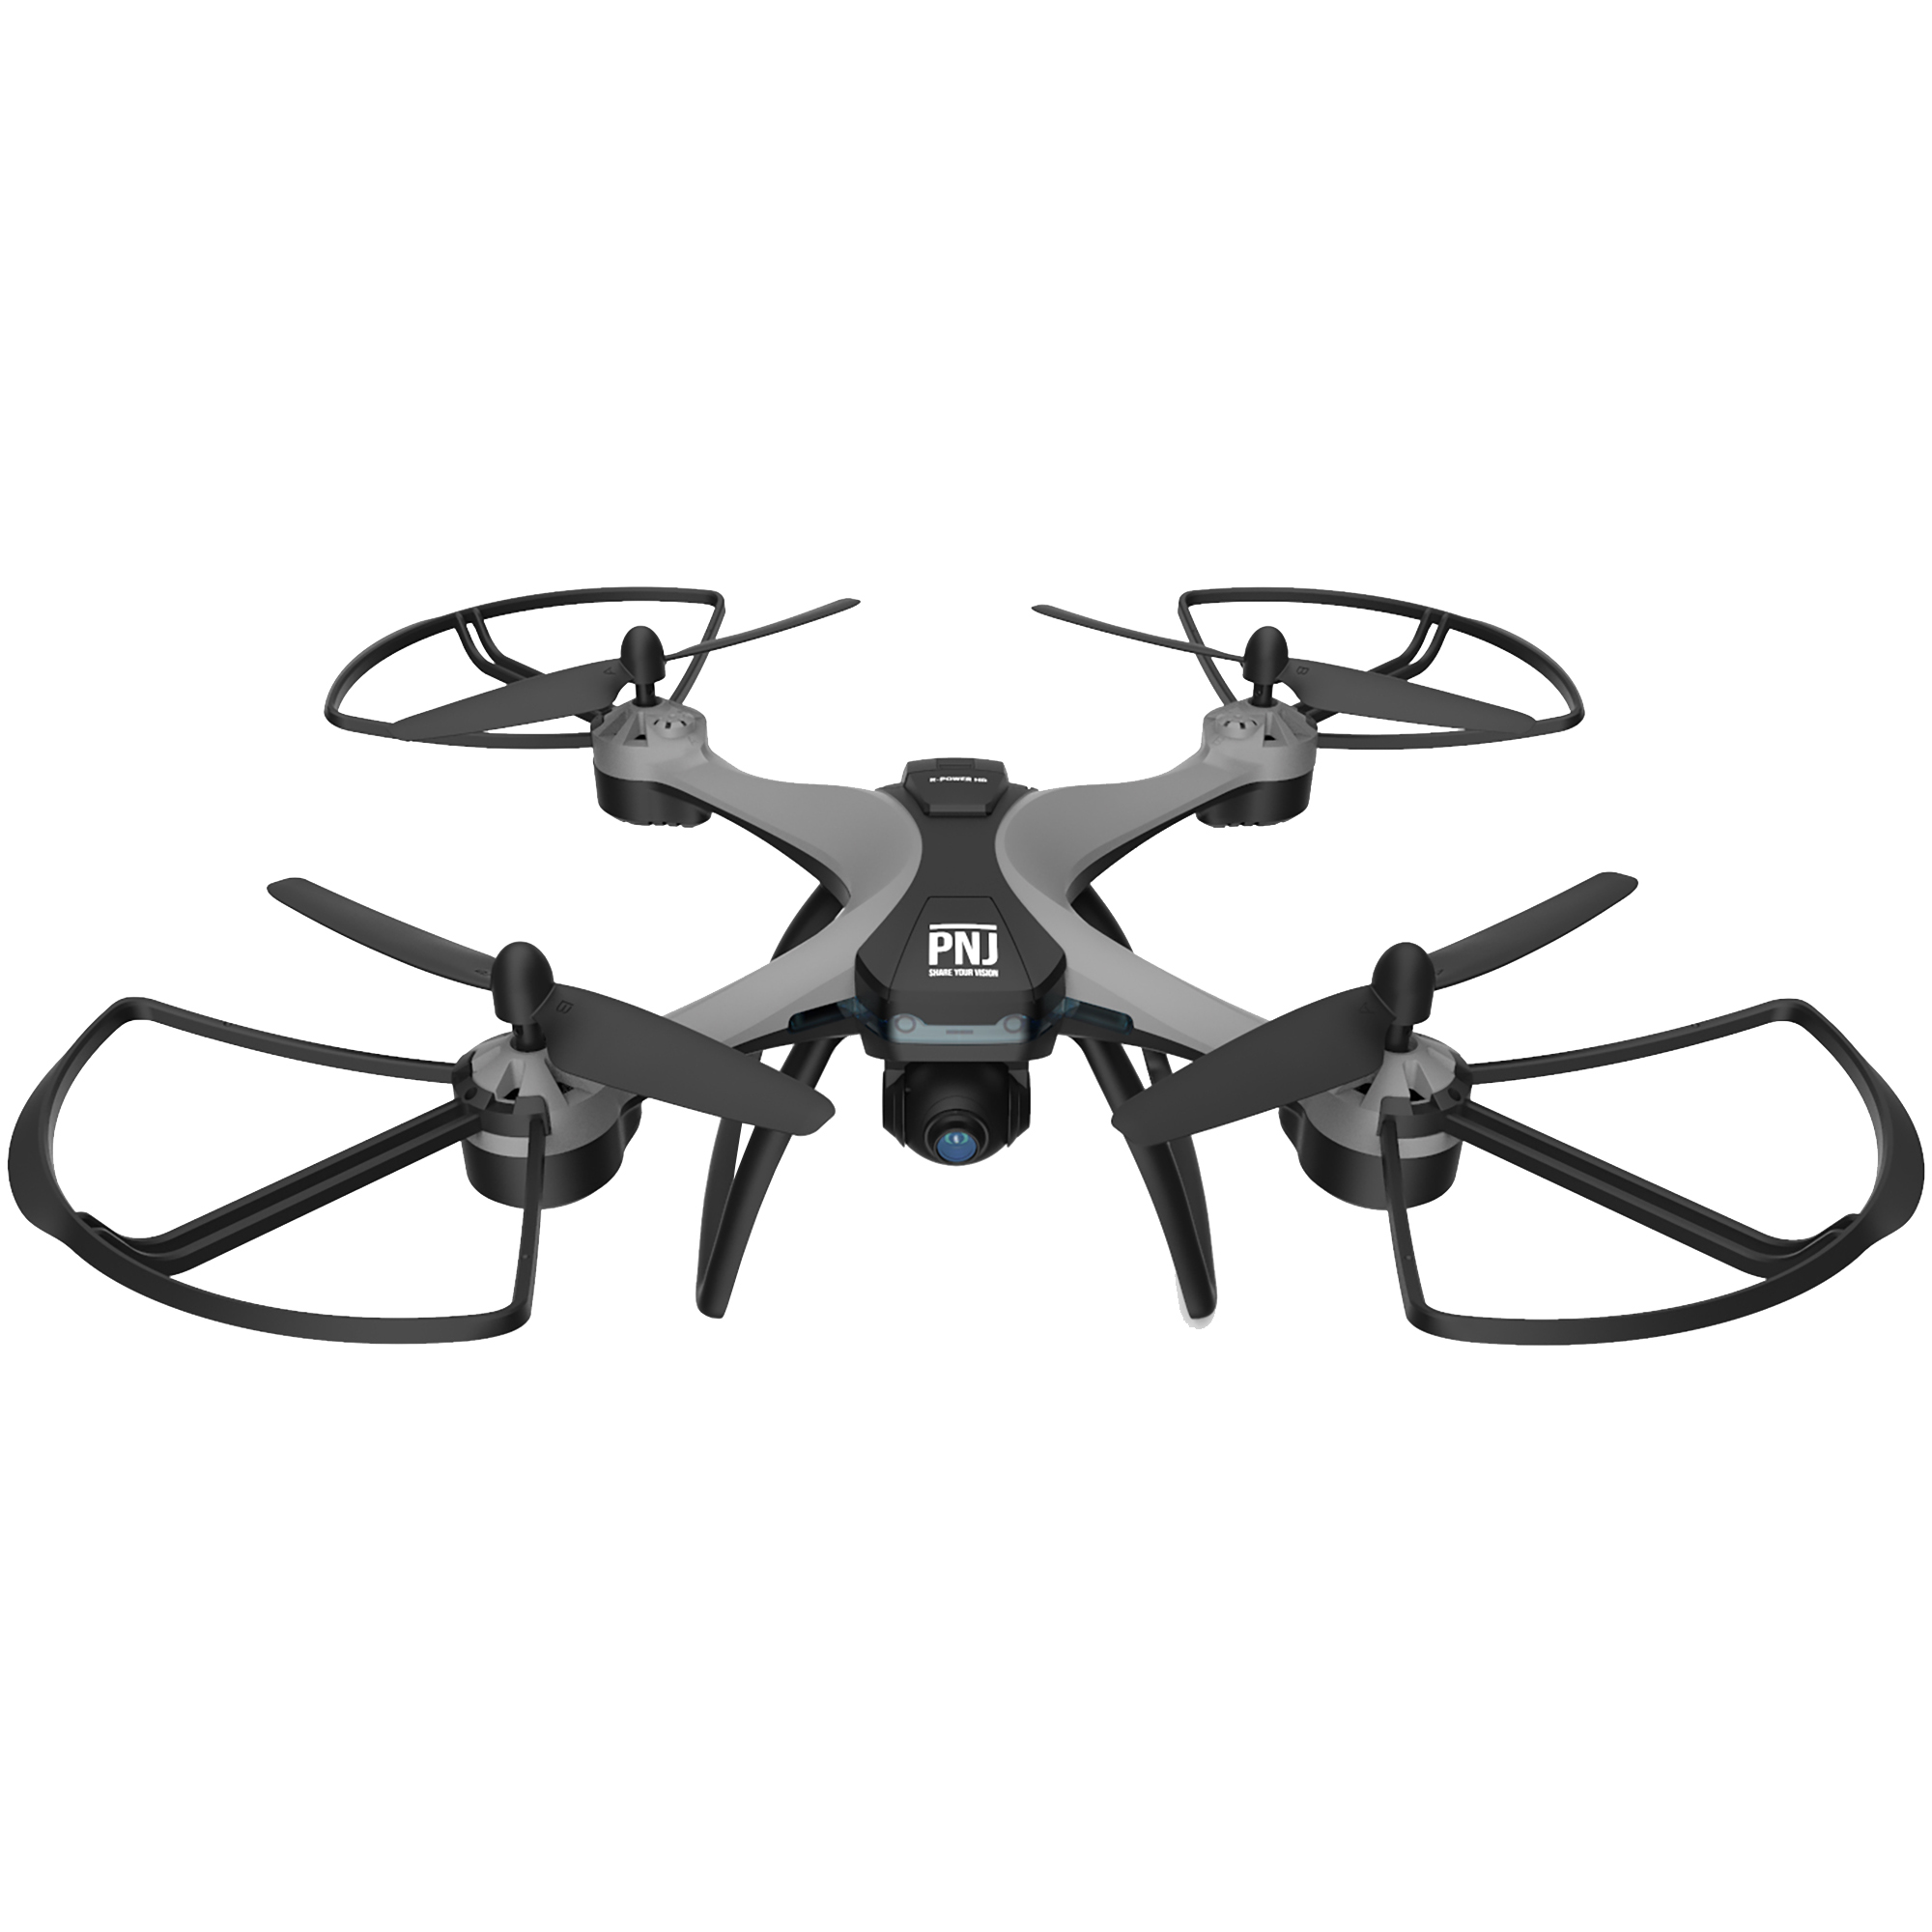 Inclus dans le pack : 1x Drone DR POWER GPS…